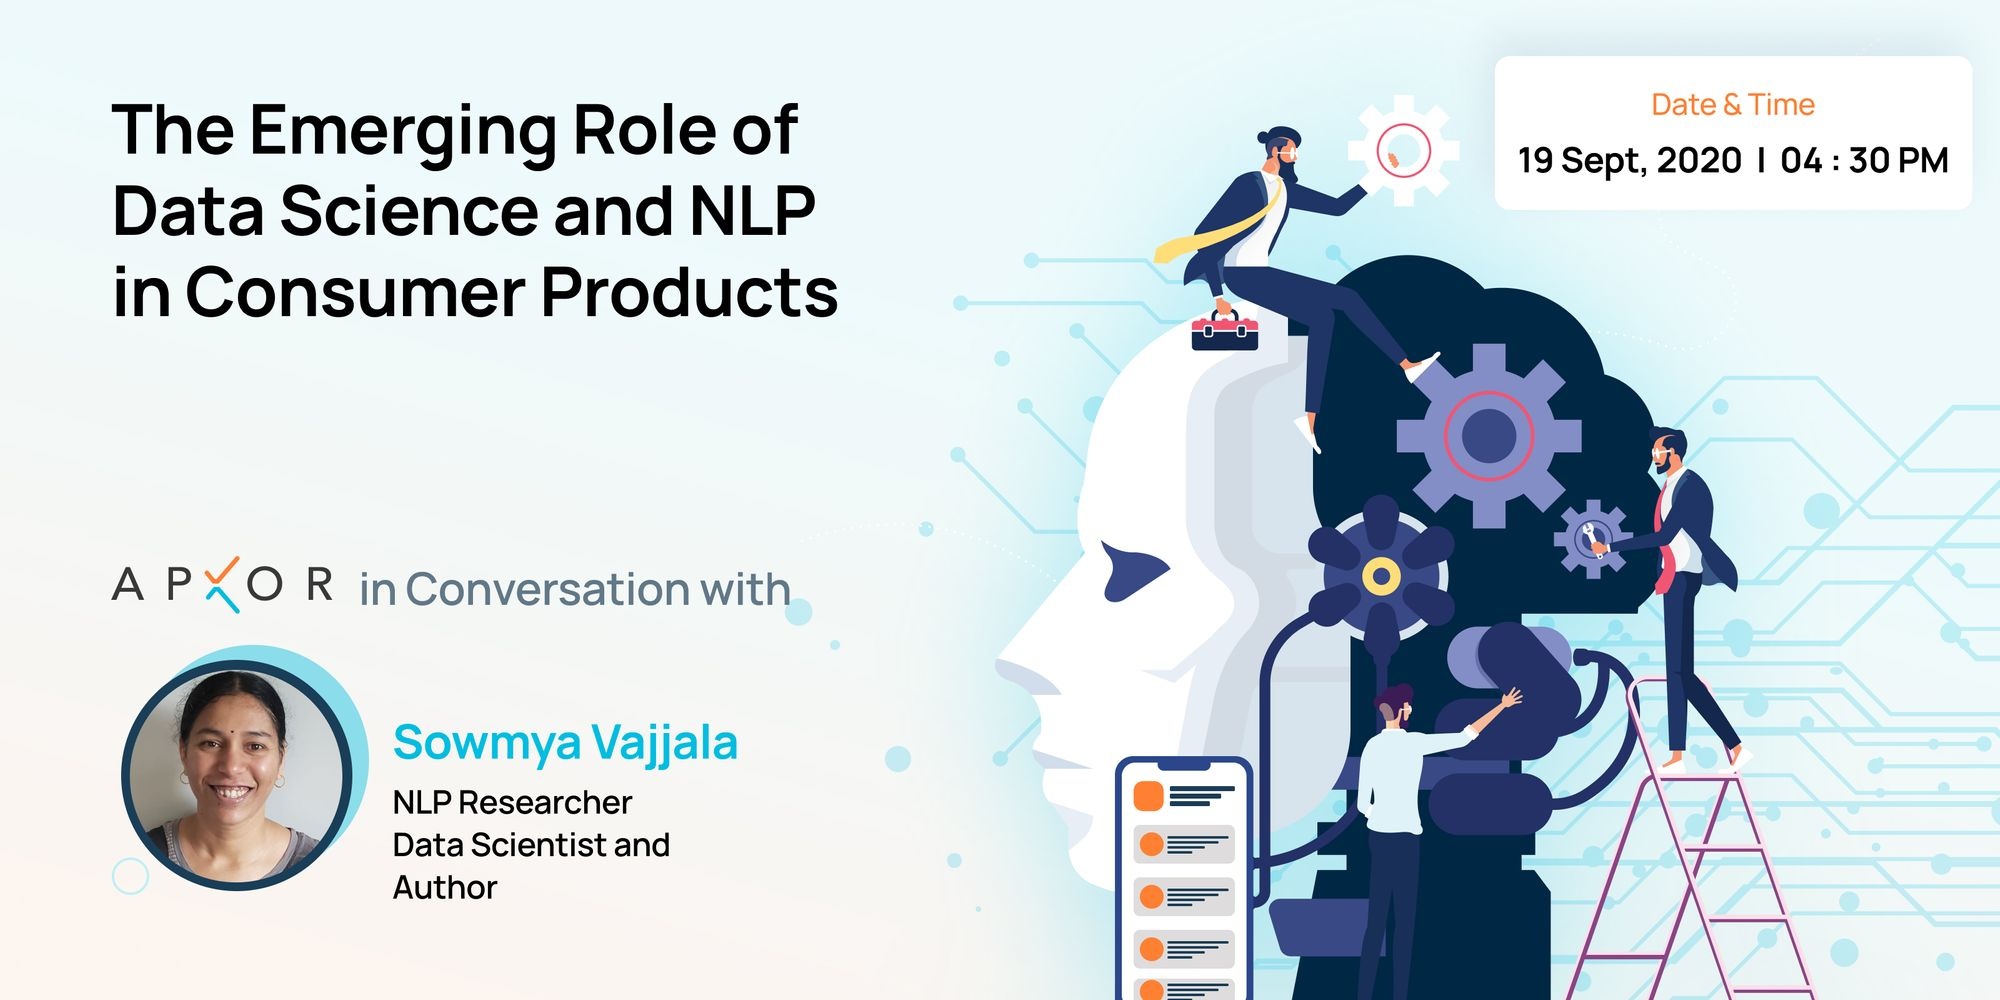 The Emerging Role of Data Science and NLP in Consumer Products